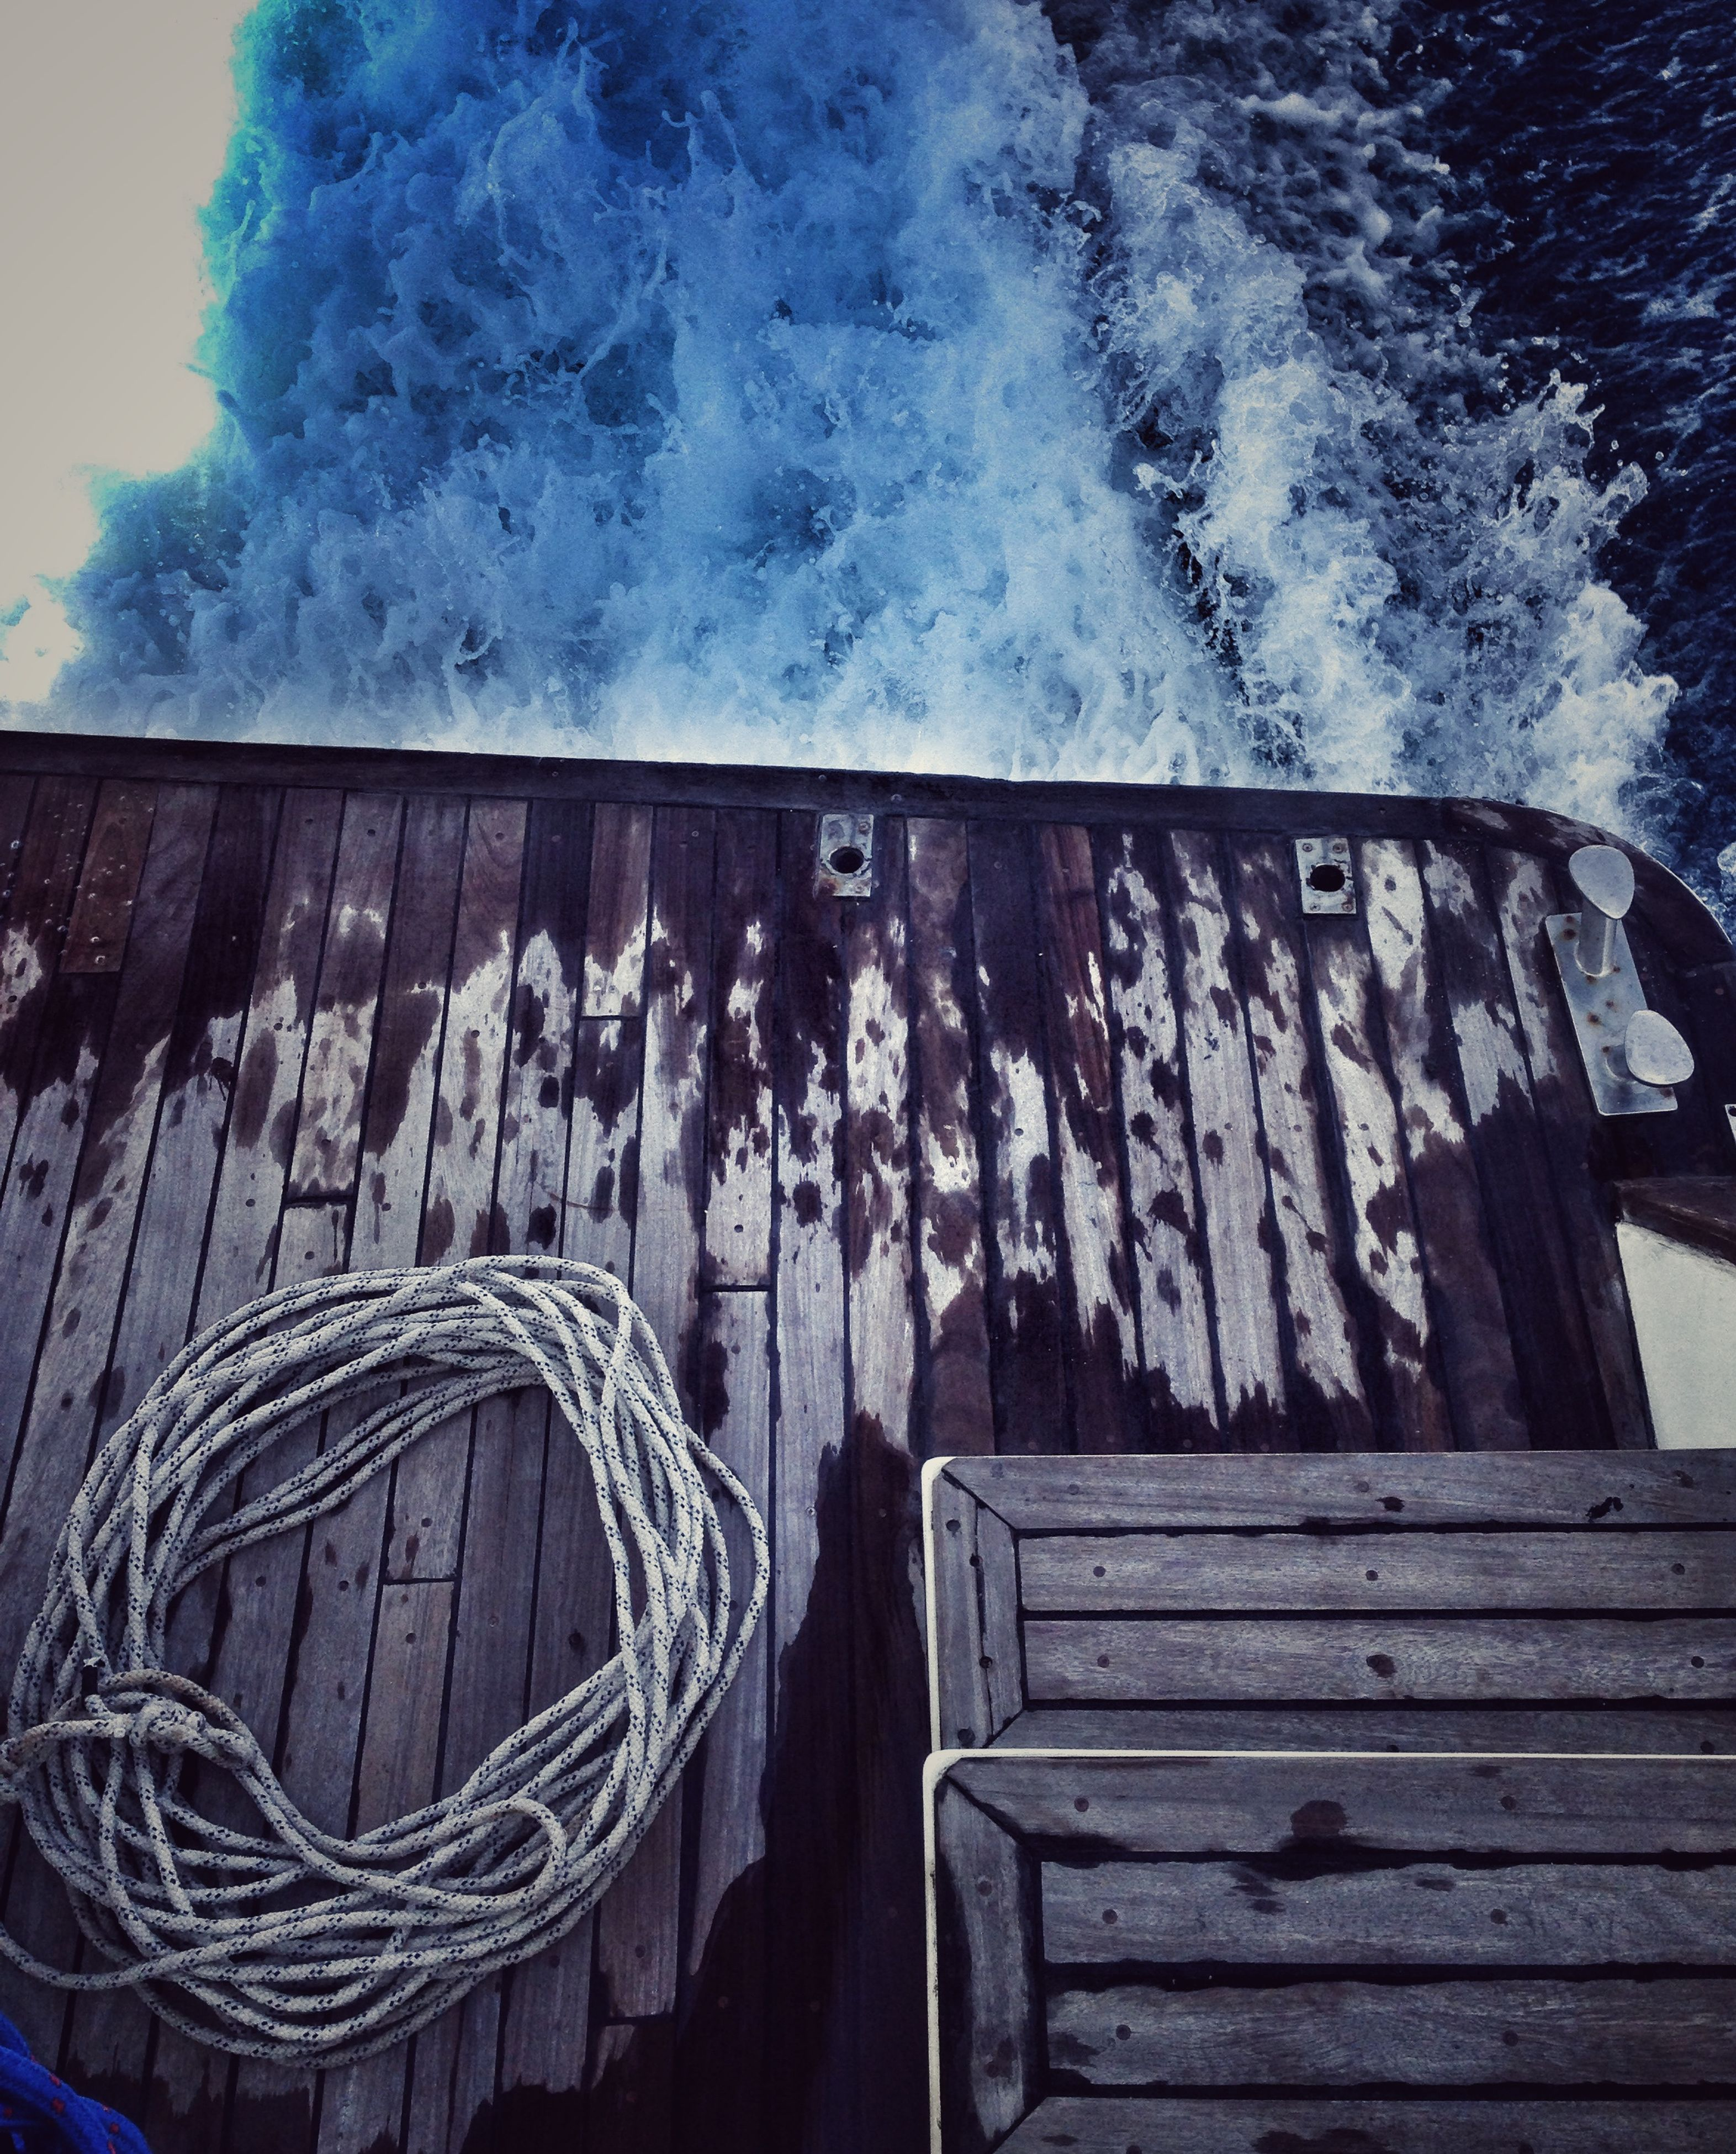 wood - material, wooden, text, built structure, day, wood, close-up, building exterior, outdoors, no people, architecture, western script, blue, water, sunlight, nature, house, art and craft, creativity, communication